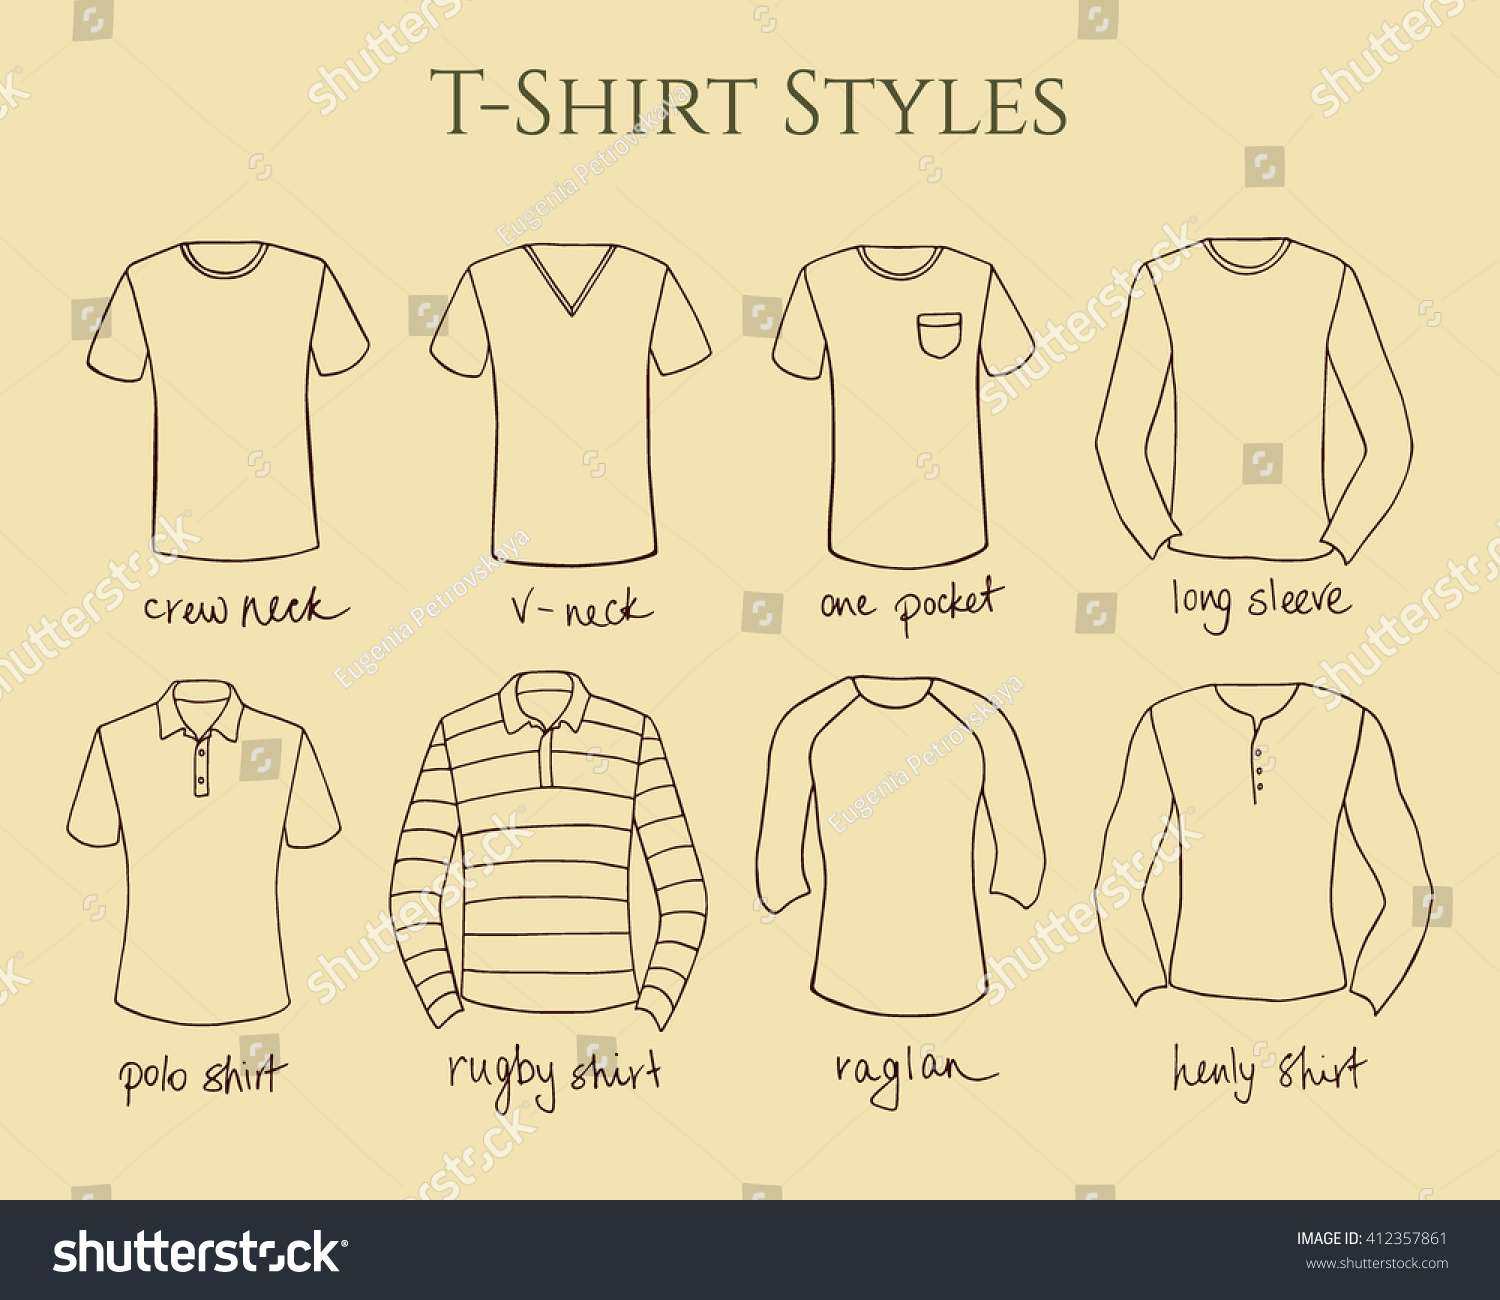 Shirt design types - Vector Visual Guide Of Male T Shirt Styles Vector Illustration Of Hand Drawn T